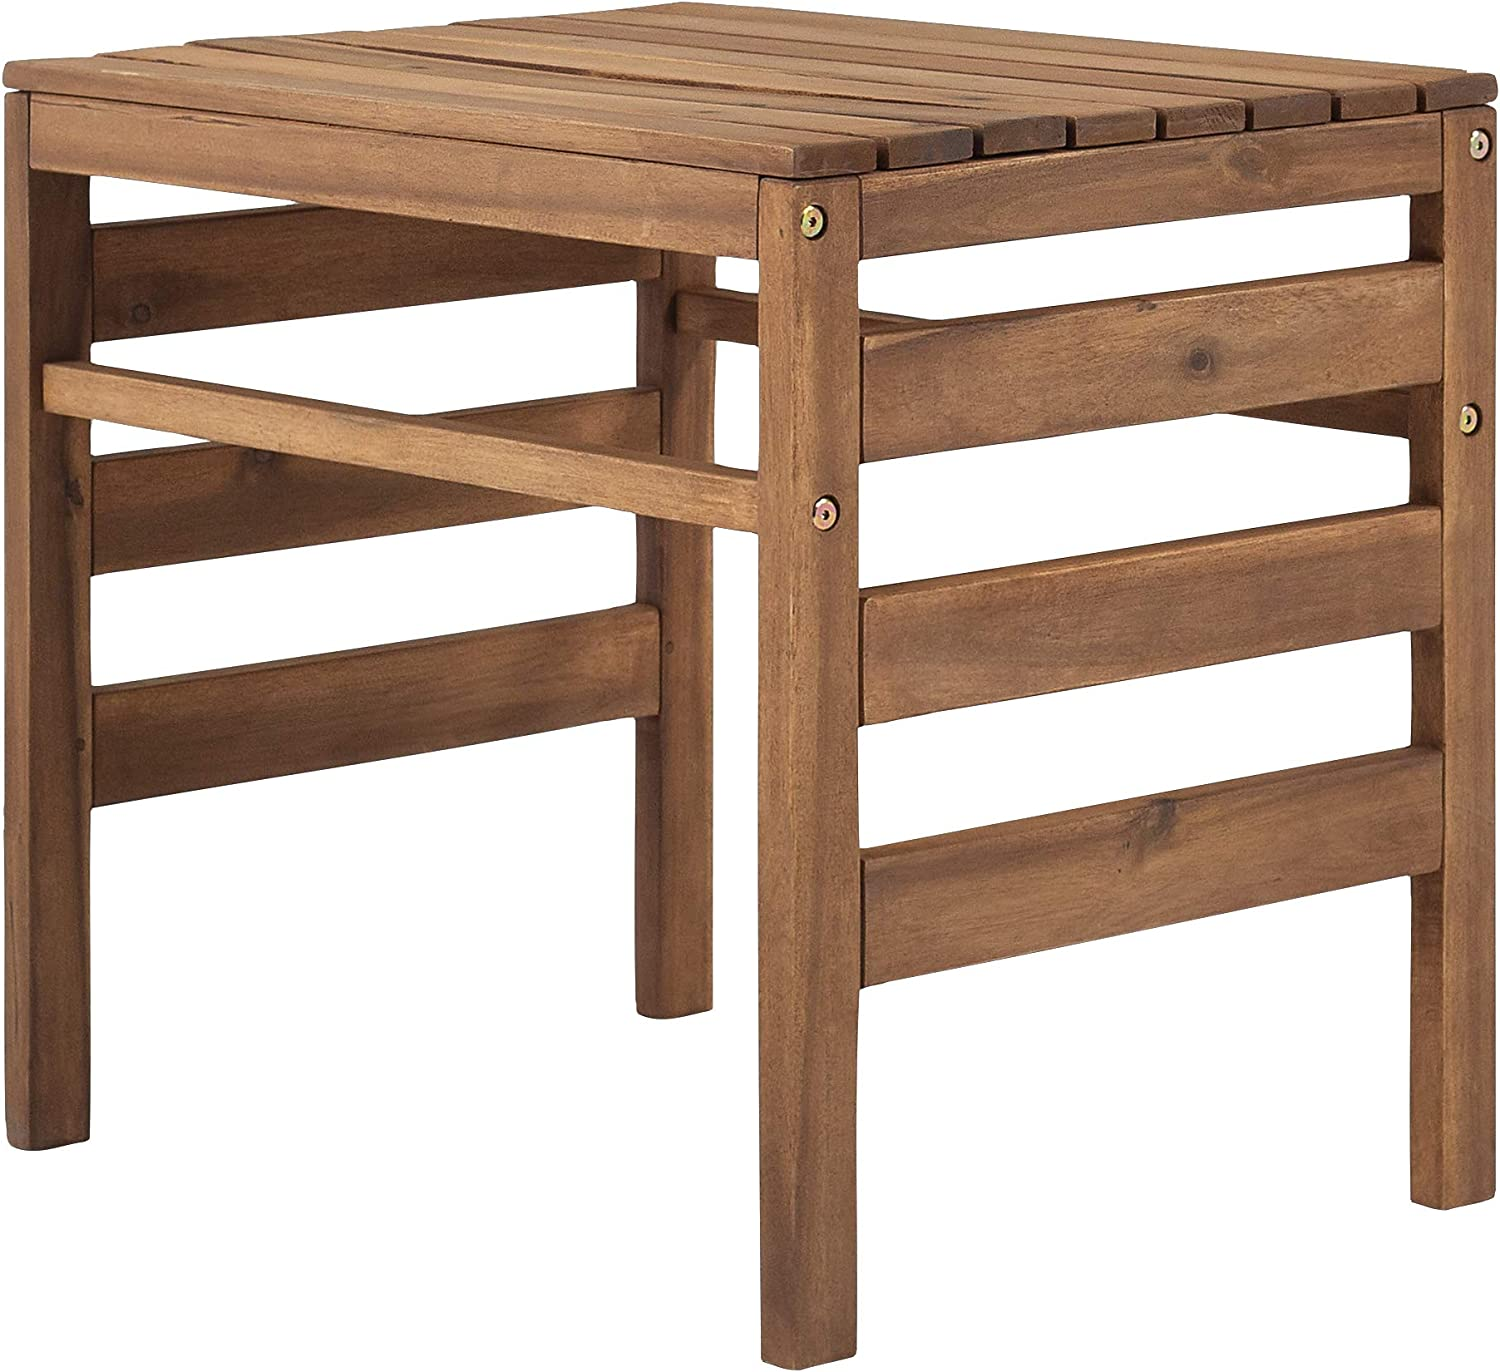 Walker Edison Ravello Contemporary Acacia Wood Slatted Patio Side Table, 18 Inch, Brown